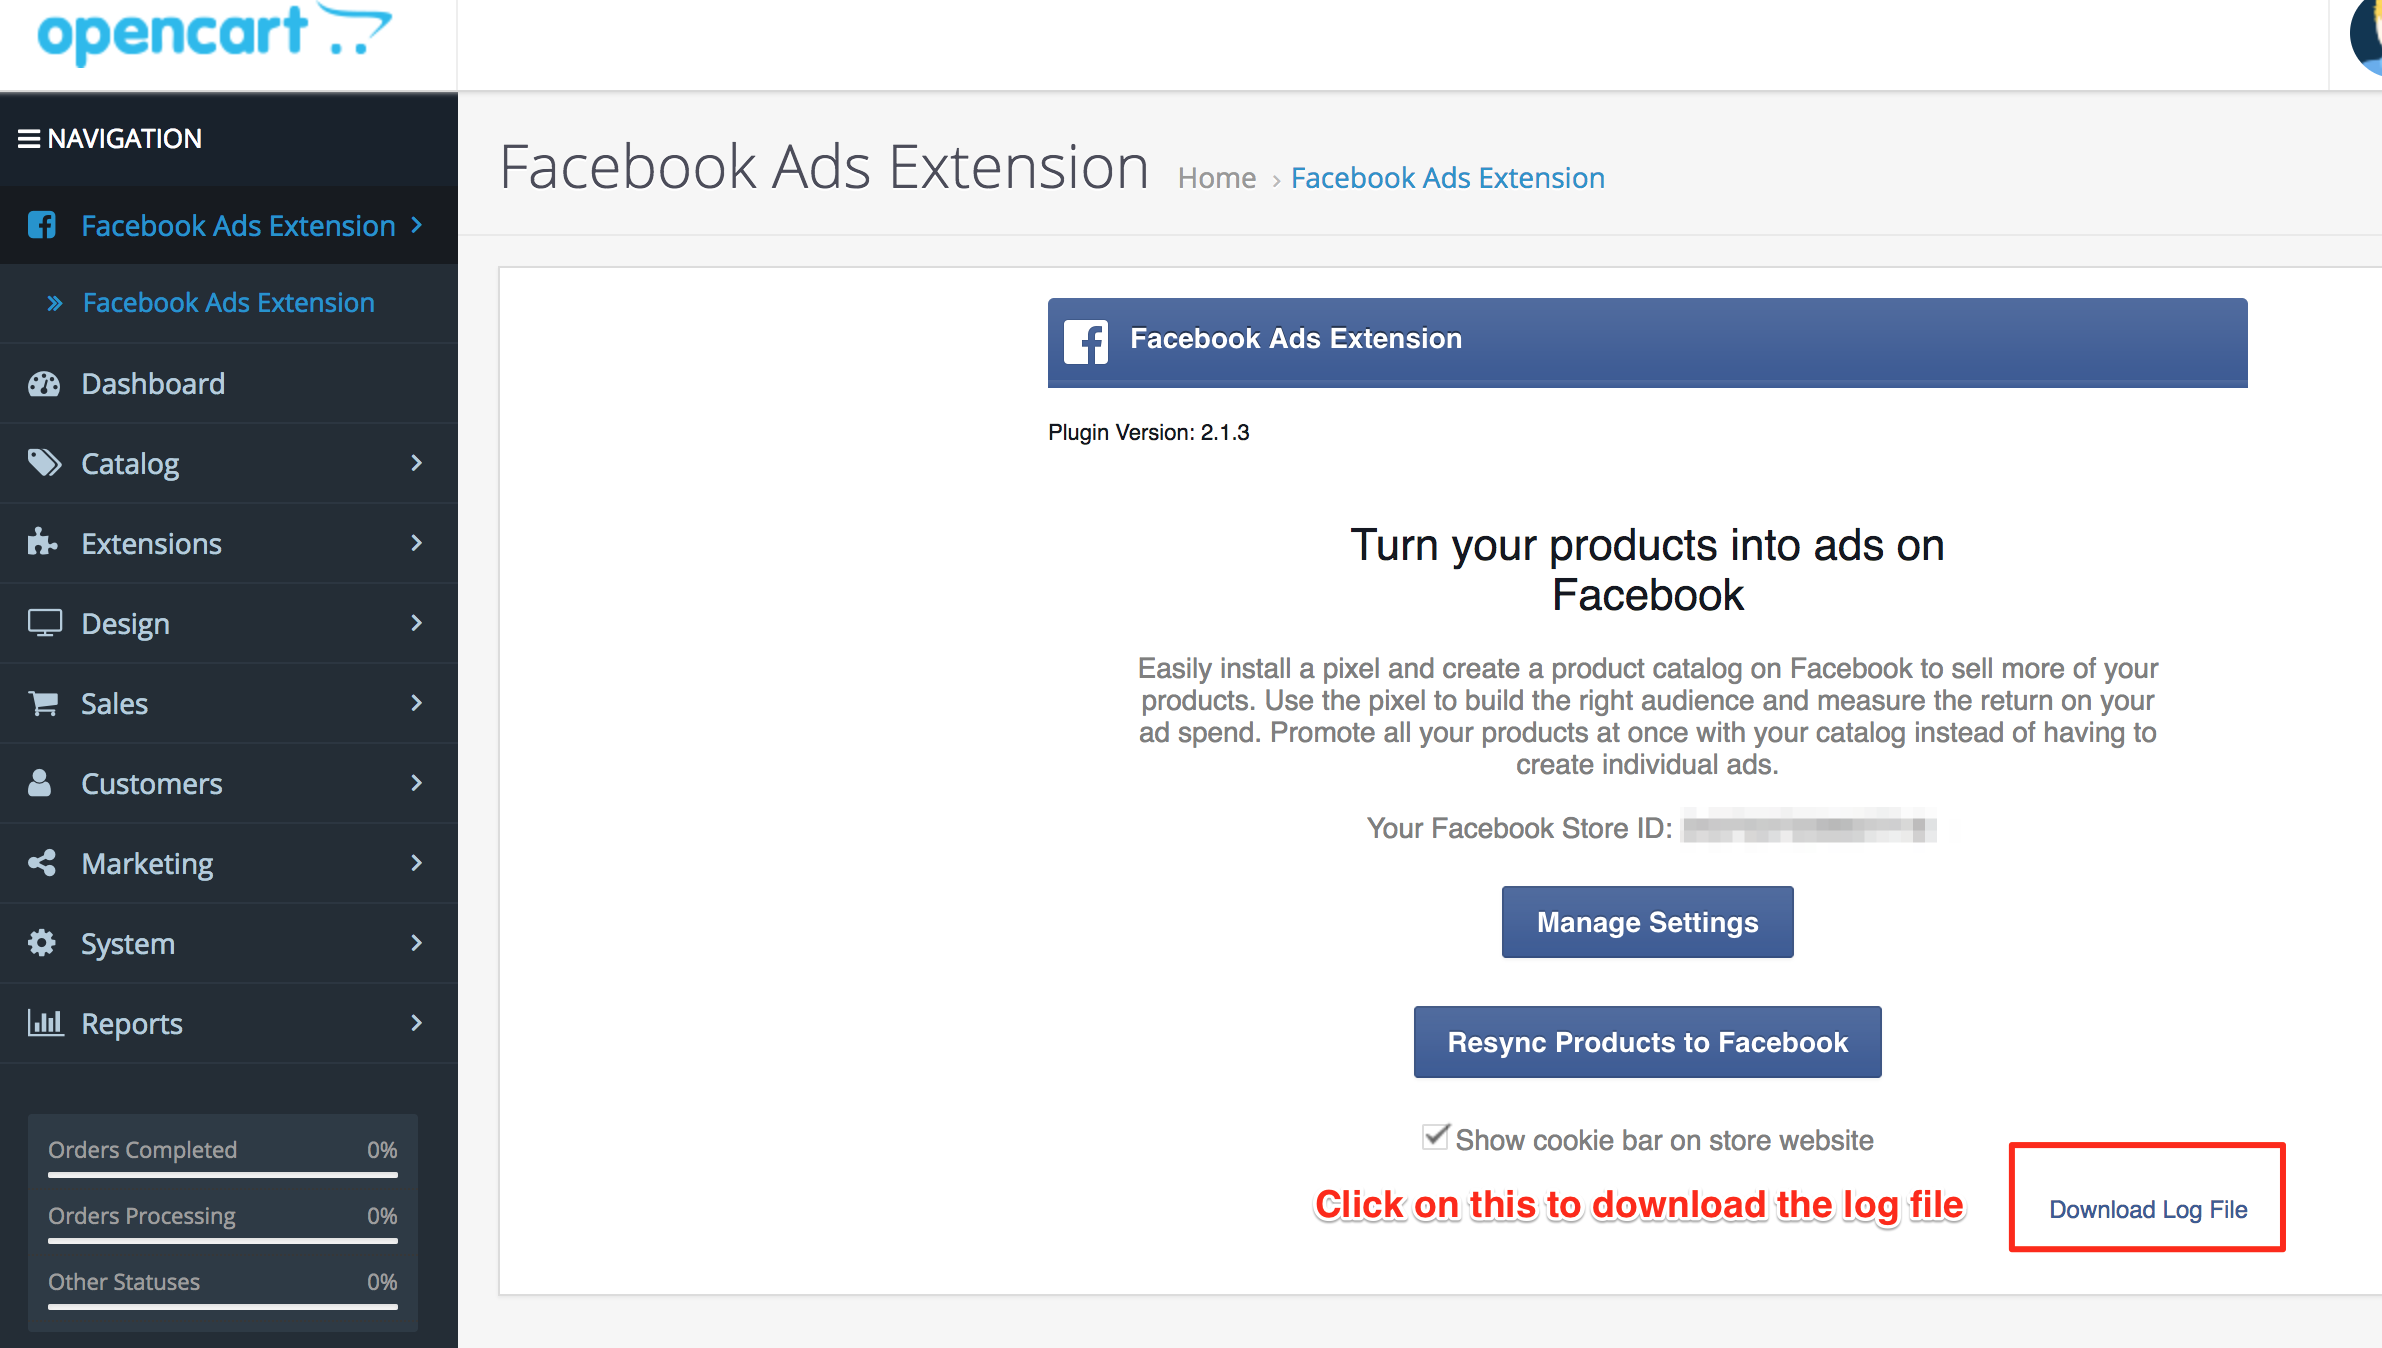 The Facebook access token is invalid  Please click on